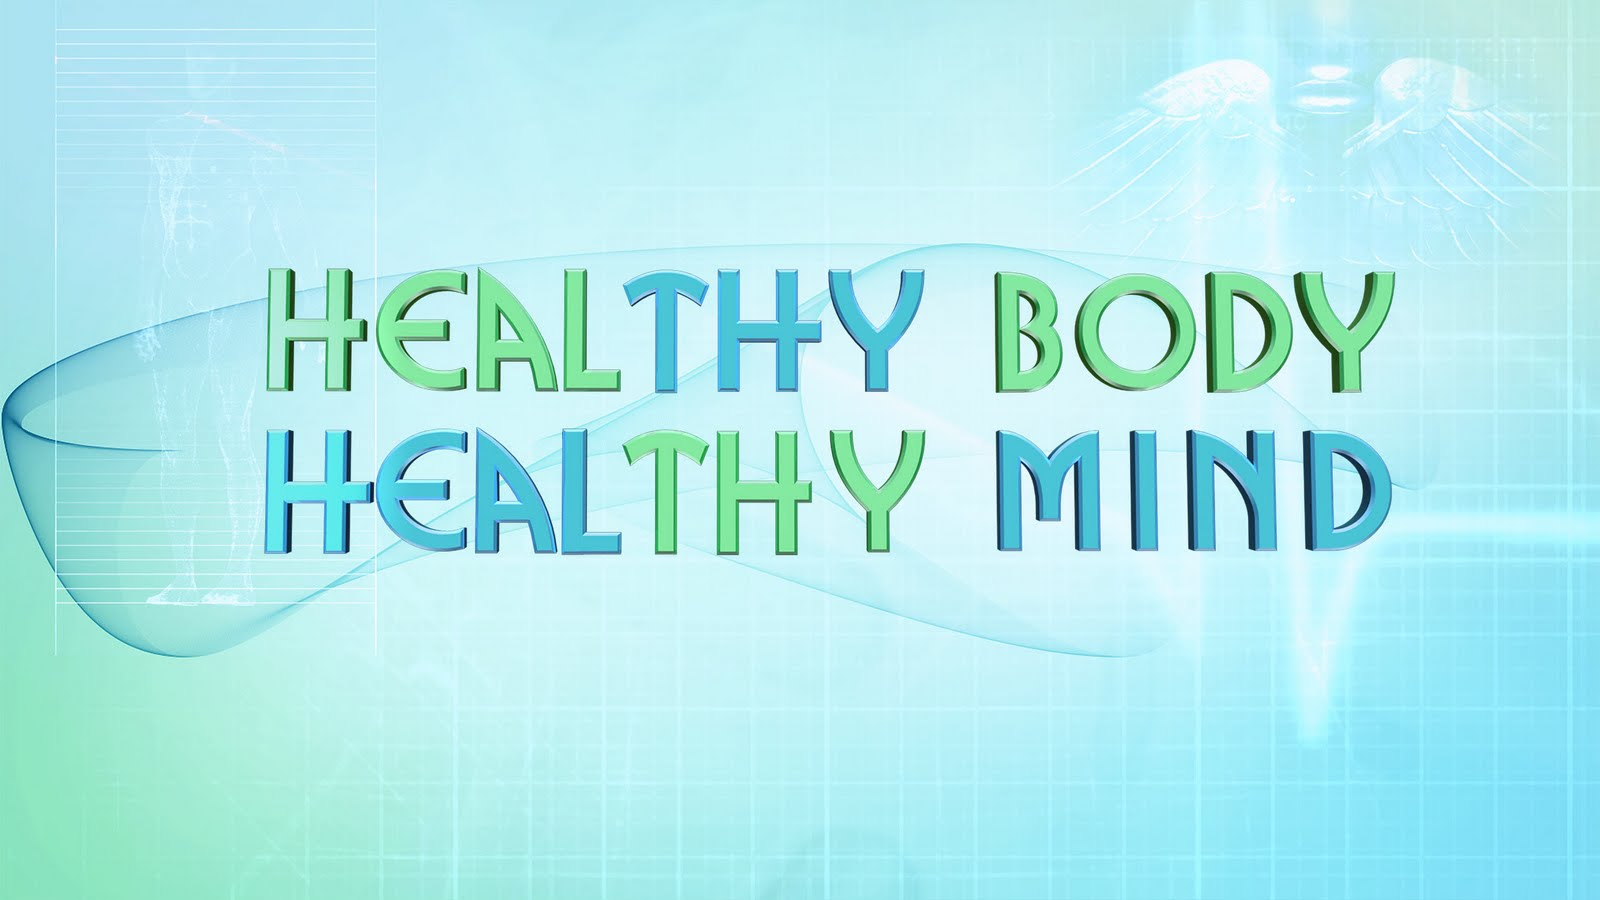 a healthy mind in a healthy body essay A healthy mind makes a healthy body in teens date: july 8, 2010 source: springer summary: happier youths are also healthier youths, according to new research.